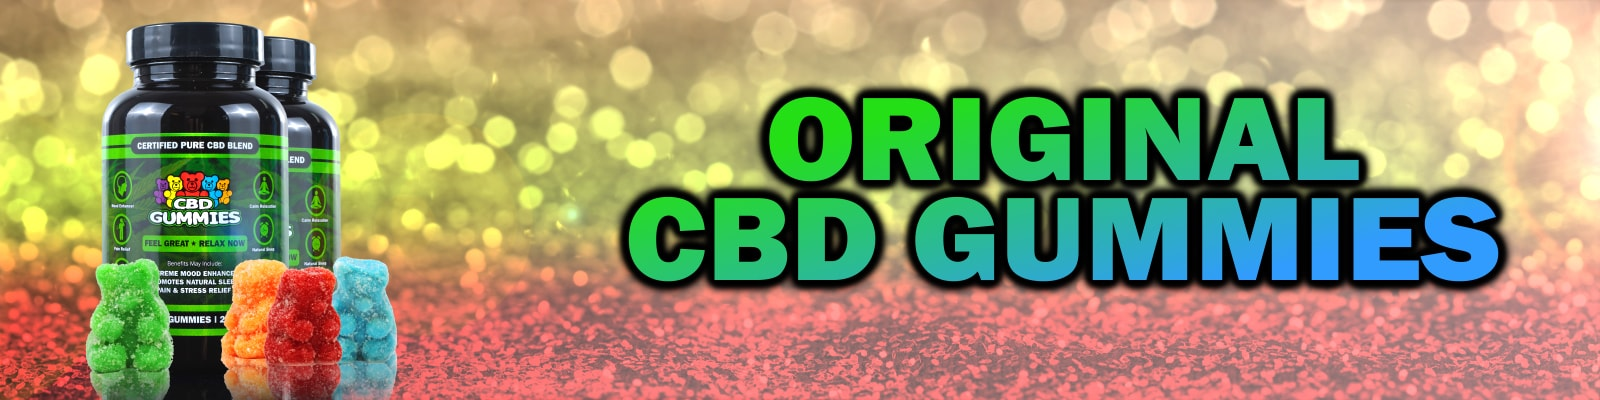 banner featuring a bottle of hemp bombs original cbd gummies